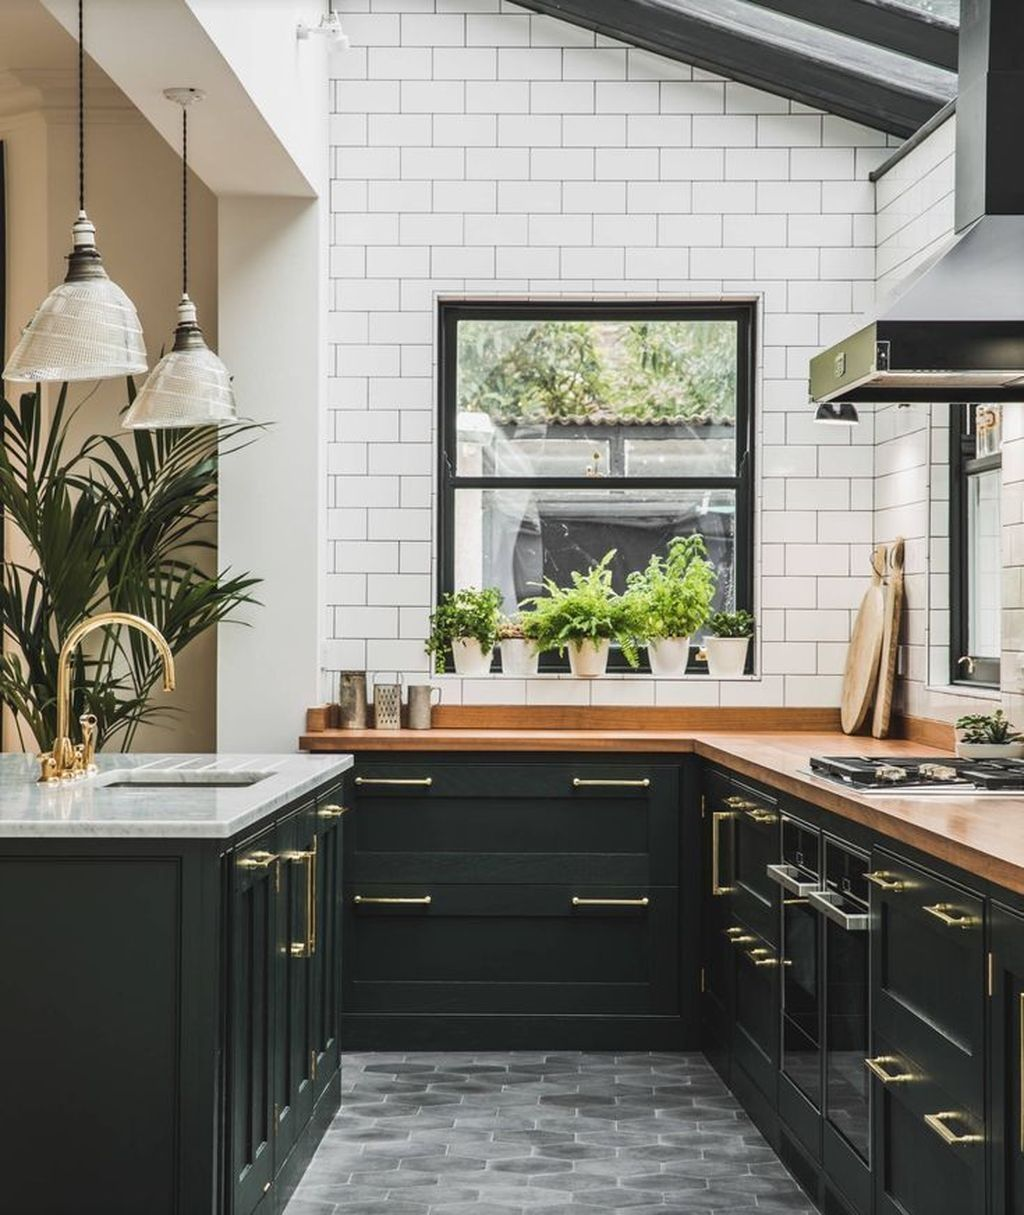 43 Attractive Kitchen Design Inspirations You Must See Kitchen 43